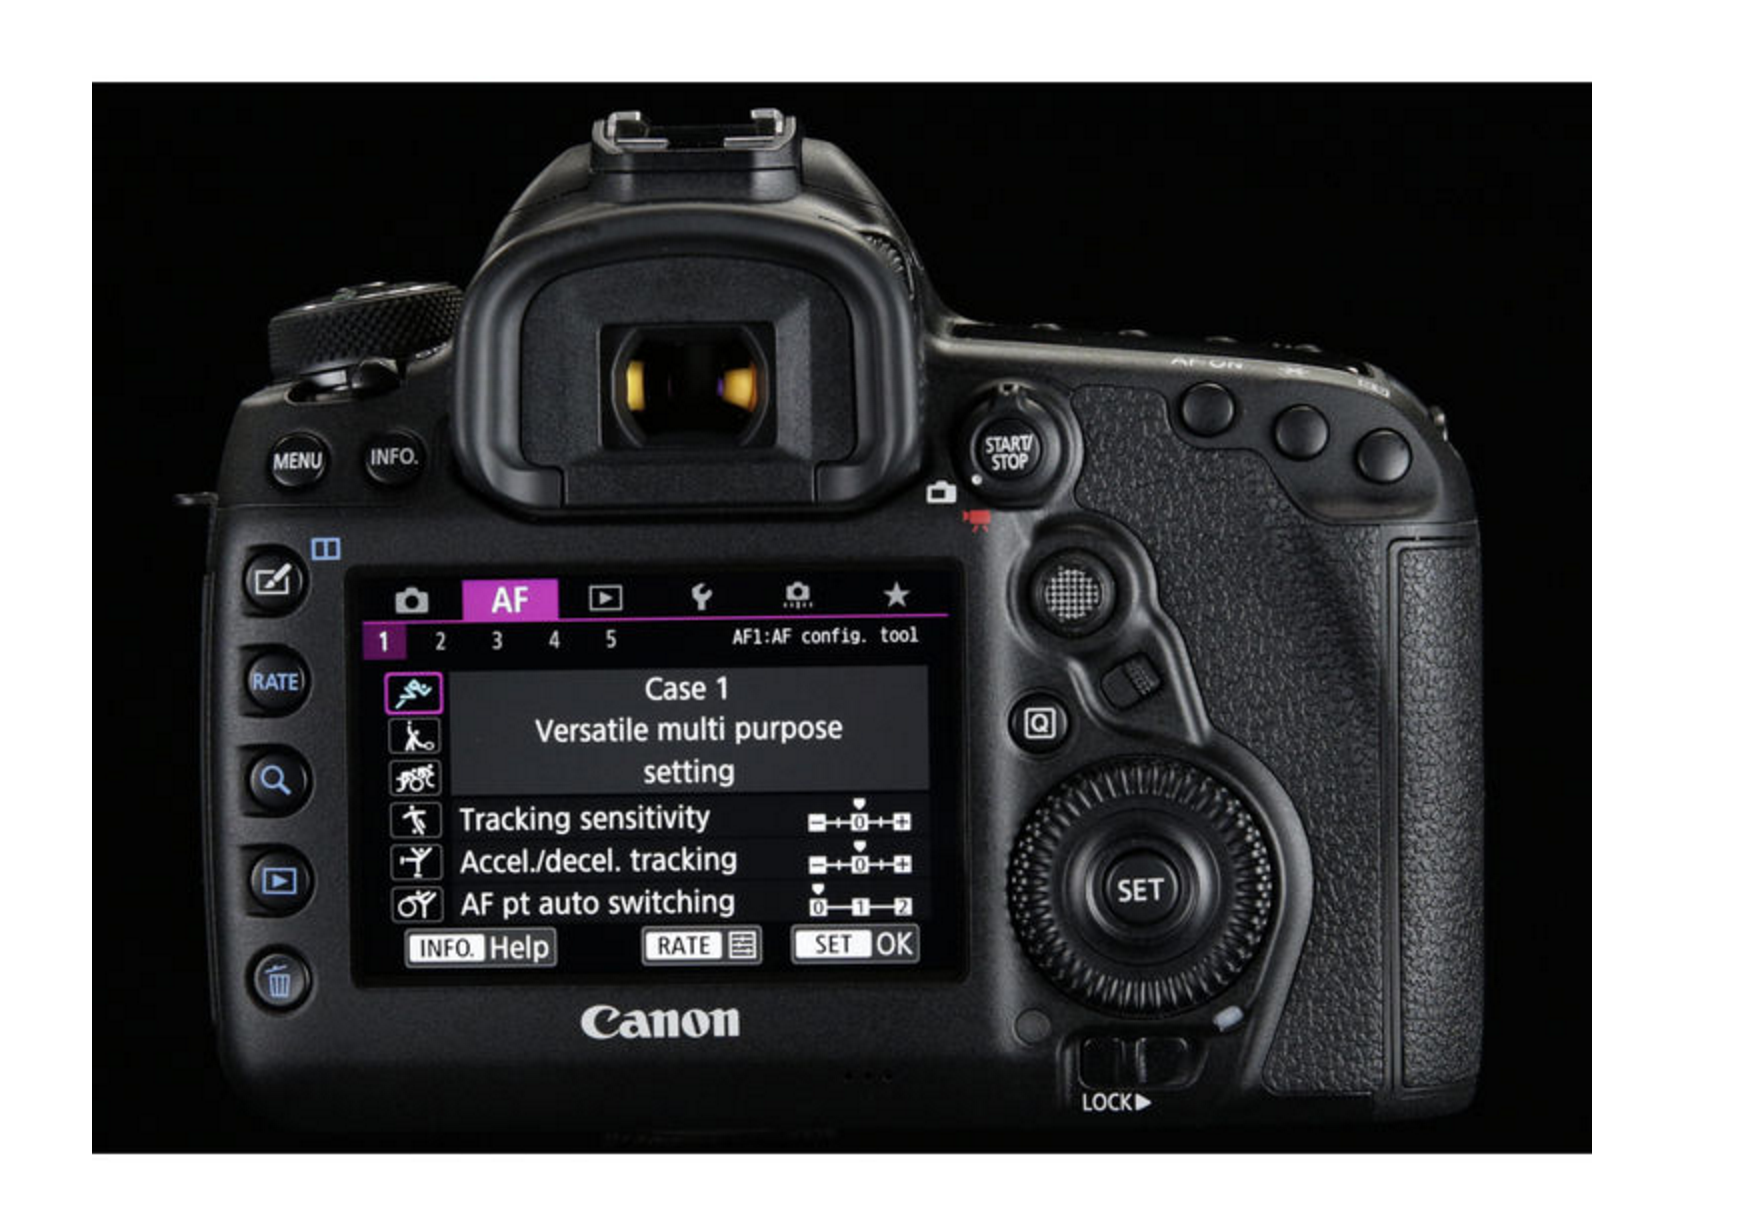 Canon 5D MARK IV menu